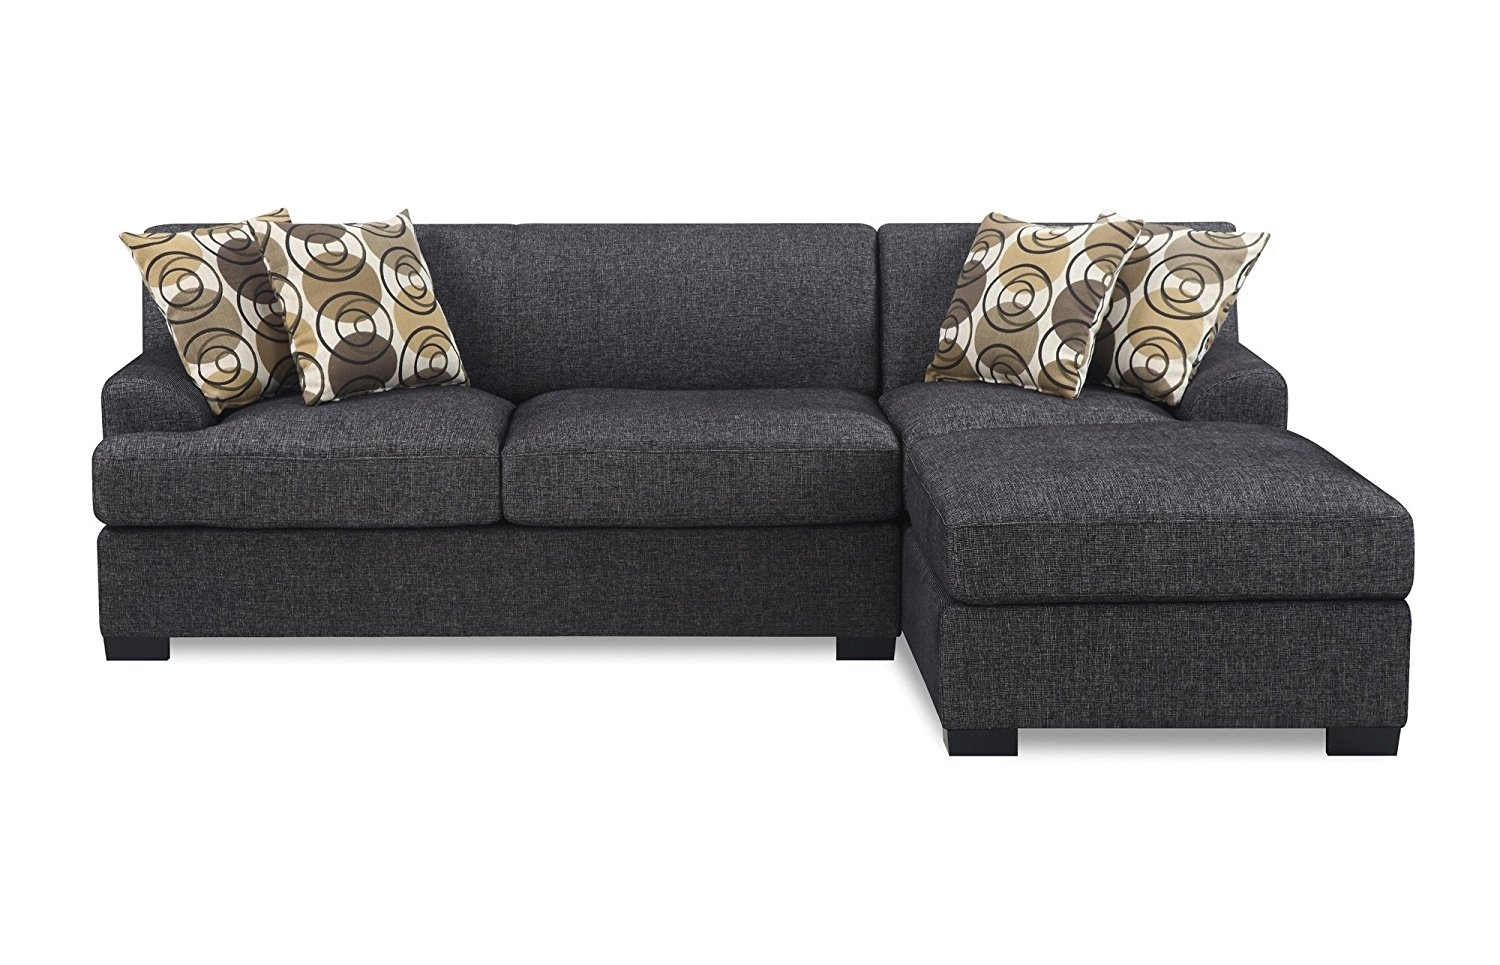 Bobkona Benford Piece Chaise Loveseat Sectional Sofa Couch With With Delano 2 Piece Sectionals With Laf Oversized Chaise (Image 4 of 25)